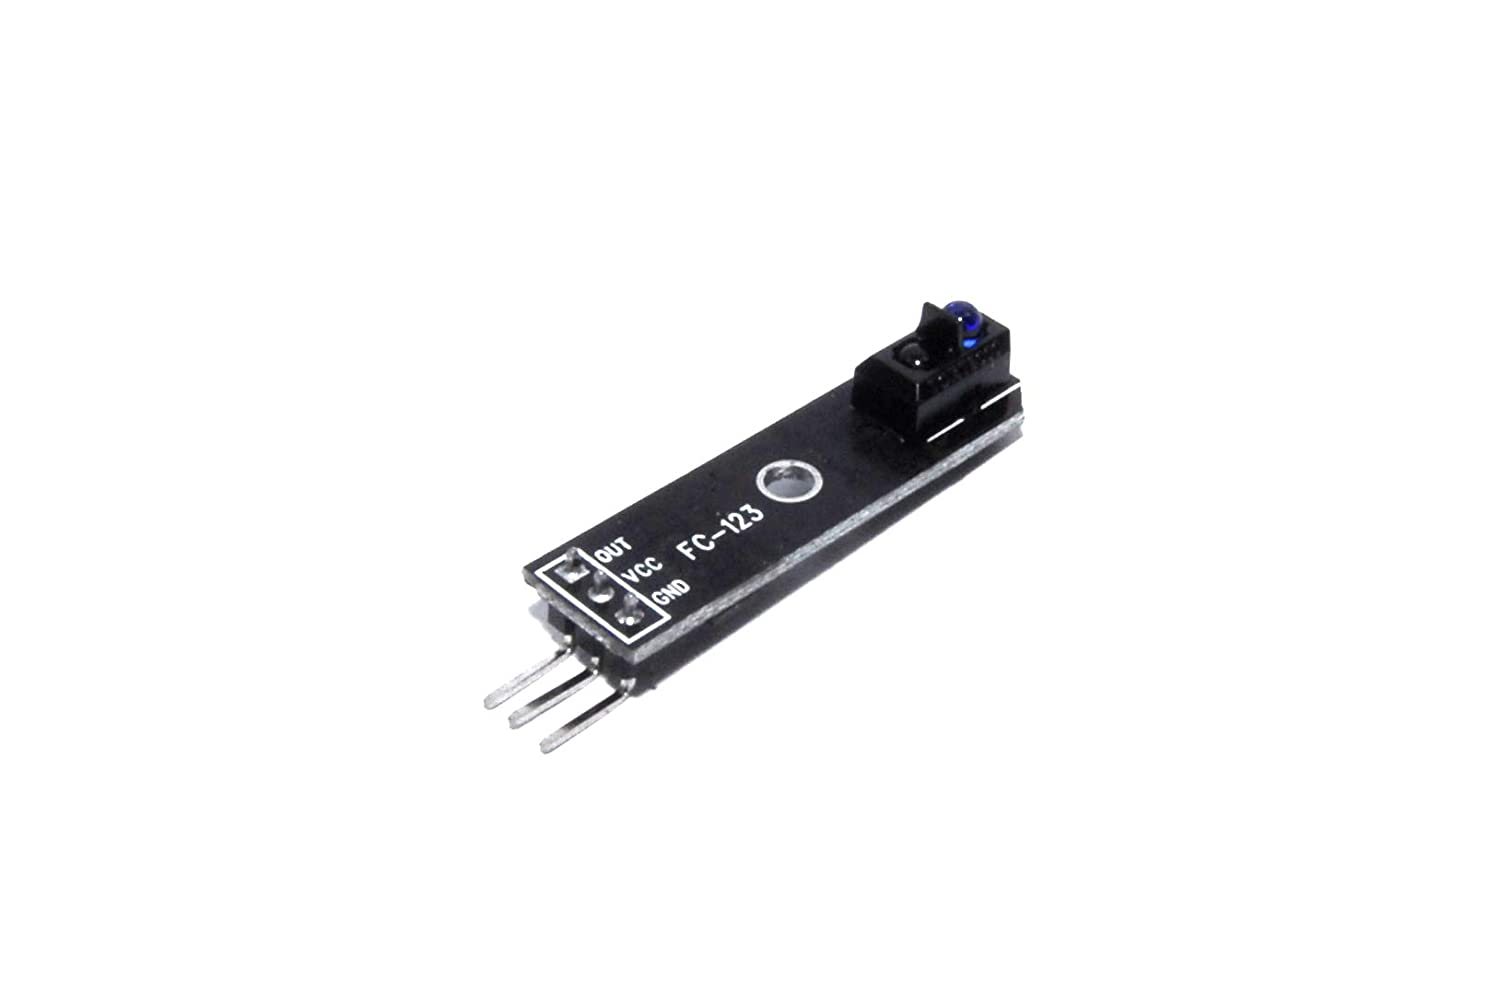 White/Black Line Detector Module FC-123 Following Robot Pi